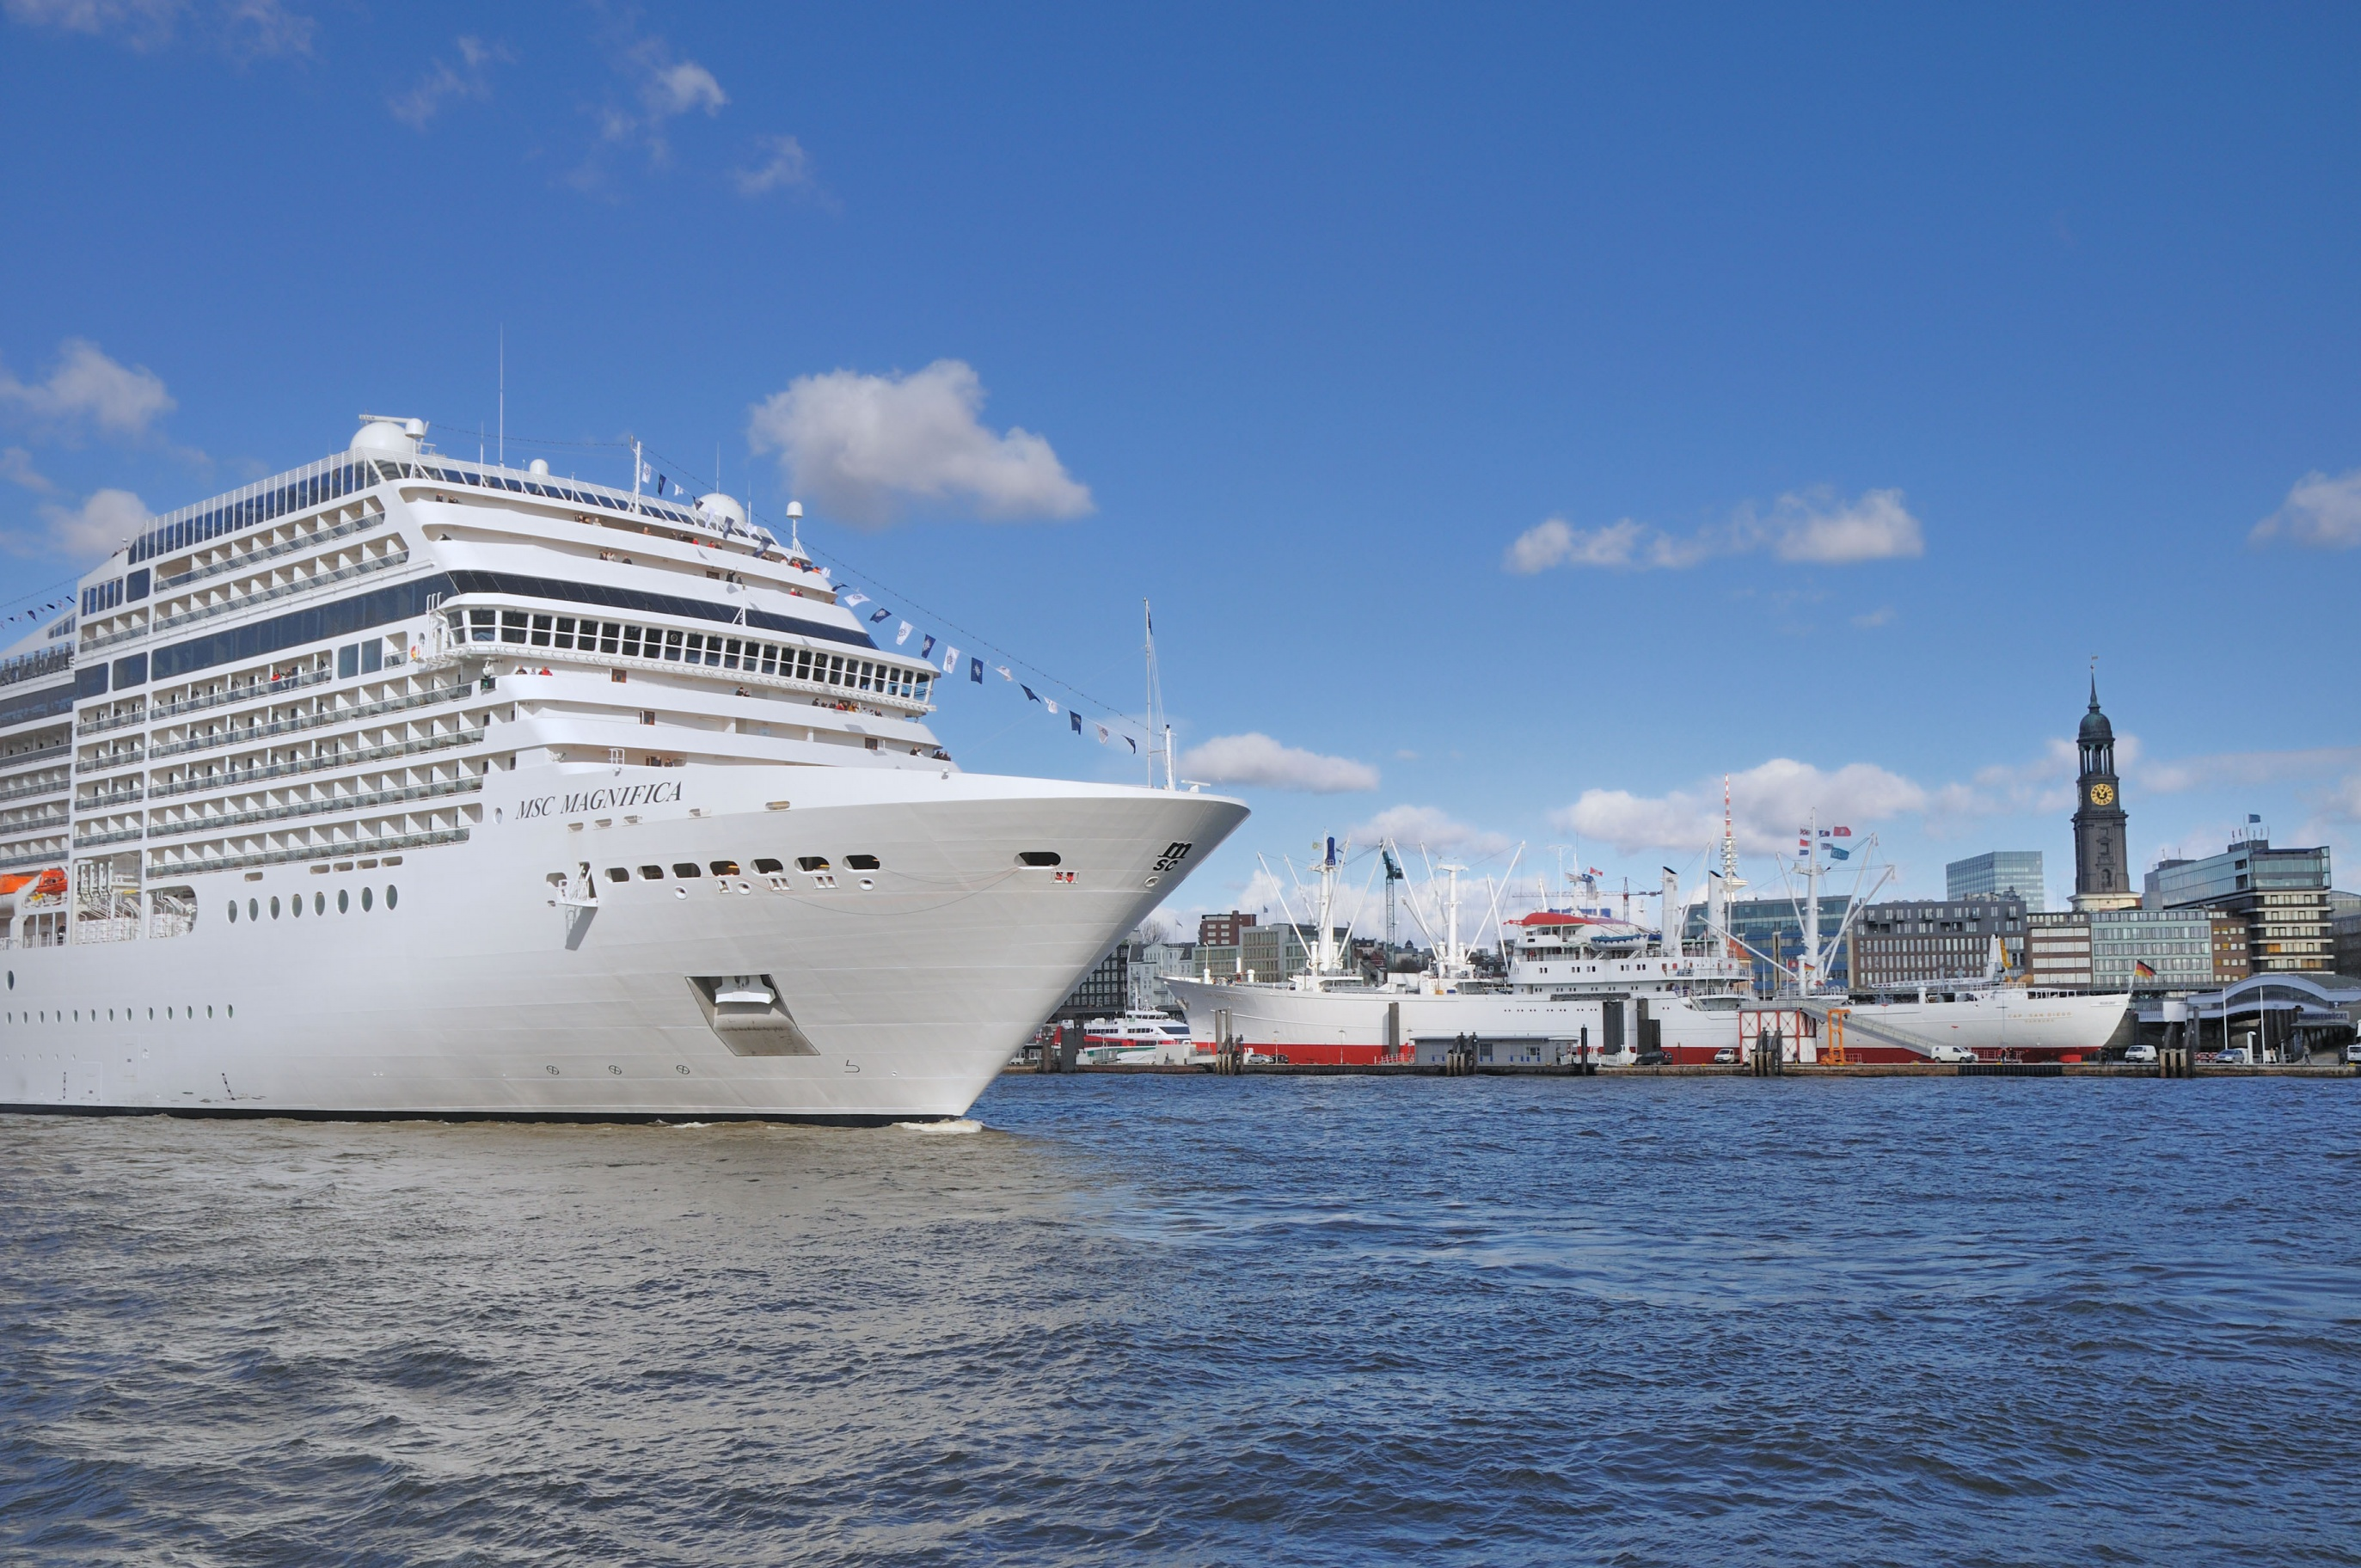 Cruise ship in the Port of Hamburg